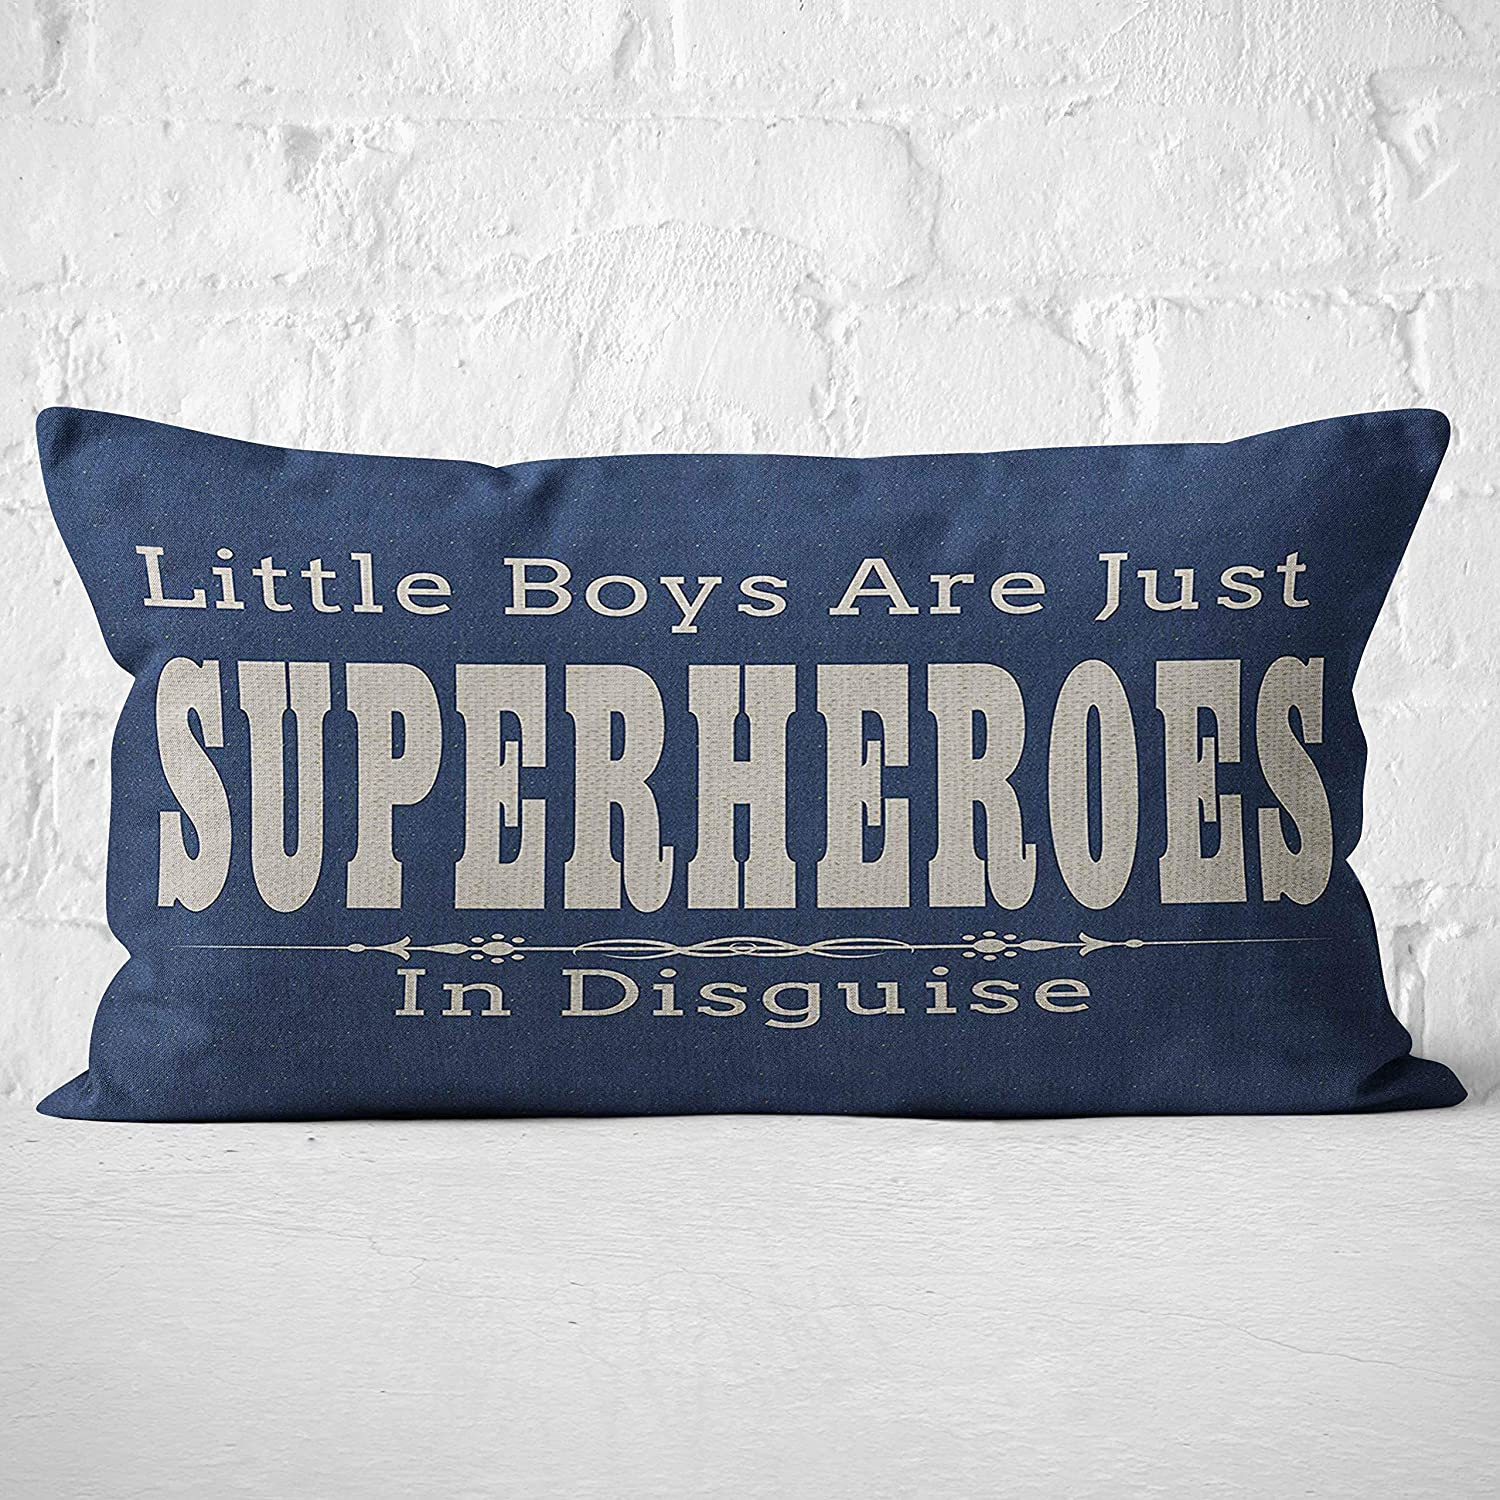 Little Boys are Just Superheroes in DisguiseThrow Pillow Case, Marvel Superhero Themed Room Decor, Son Bedroom Decor, Gift Son, Nephew, Grandson, 20 x 12 Inch Linen Cushion Cover for Sofa Couch Bed